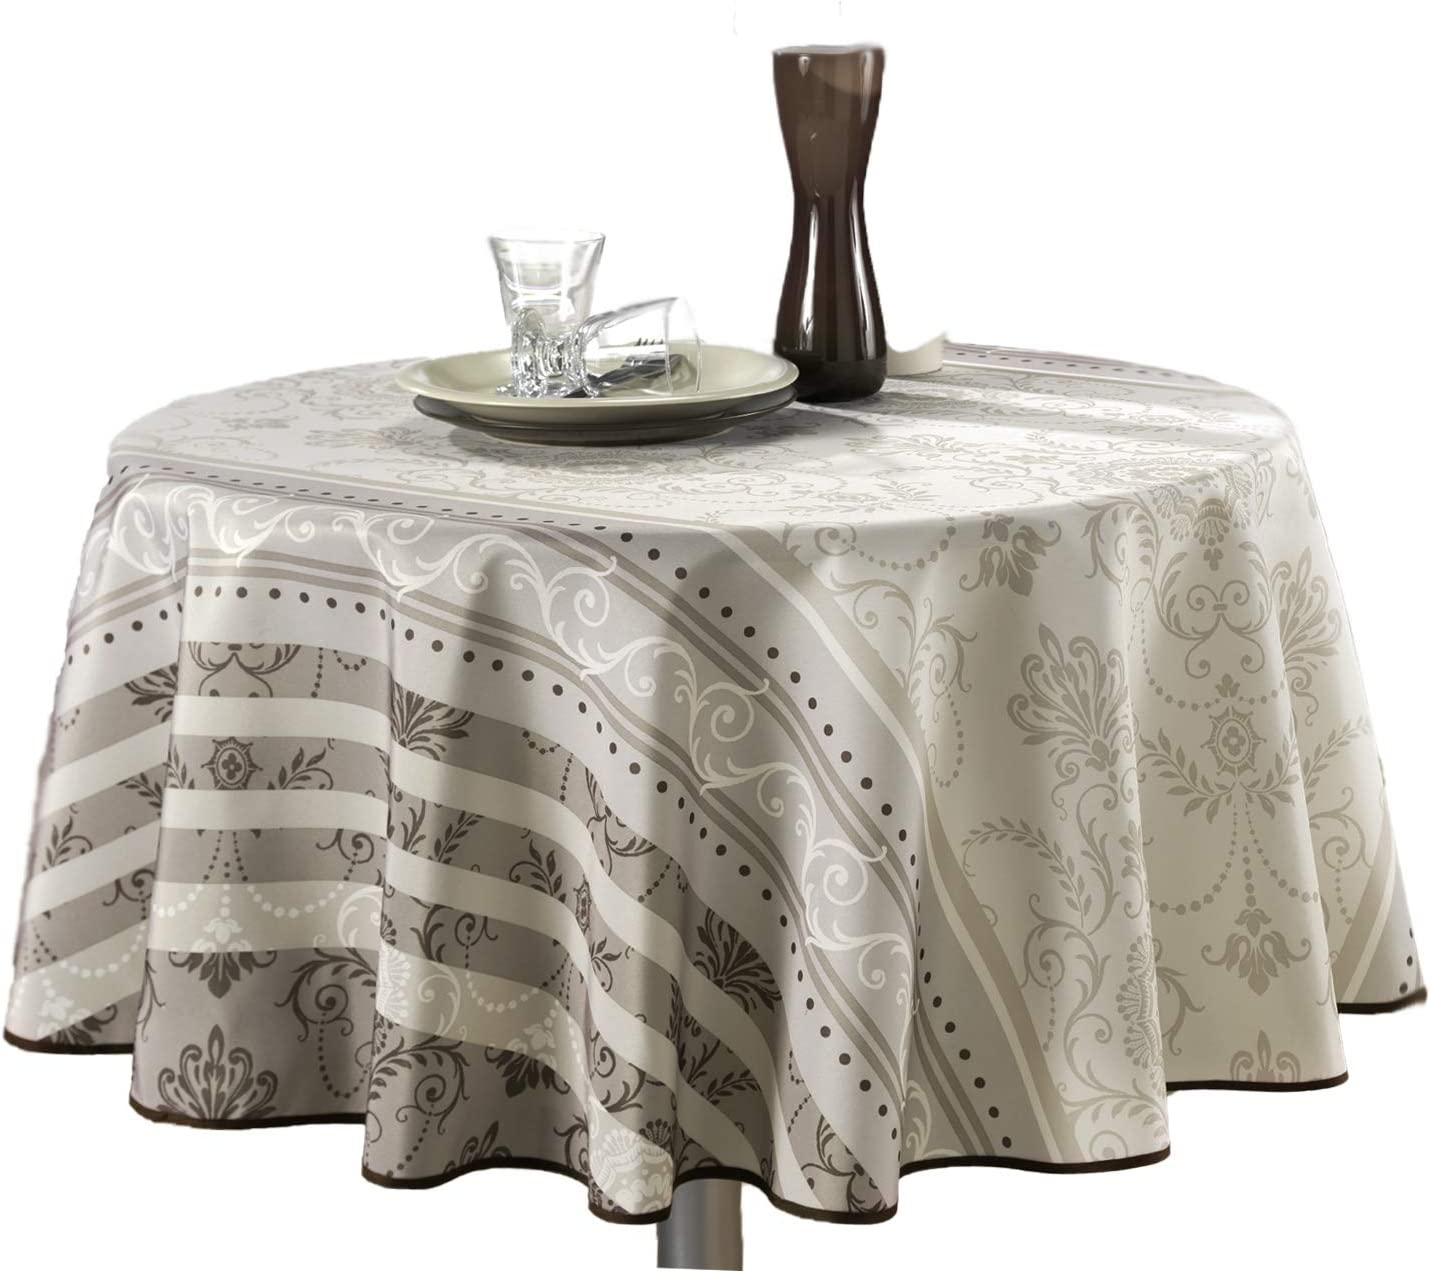 63-Inch Round Tablecloth Ivory White Brown Floral Baroque, Stain Resistant, Washable, Liquid Spills bead up, Seats 4 to 6 People (Other Size: 60x80-Inch, 60x95-Inch, 60x120-Inch)